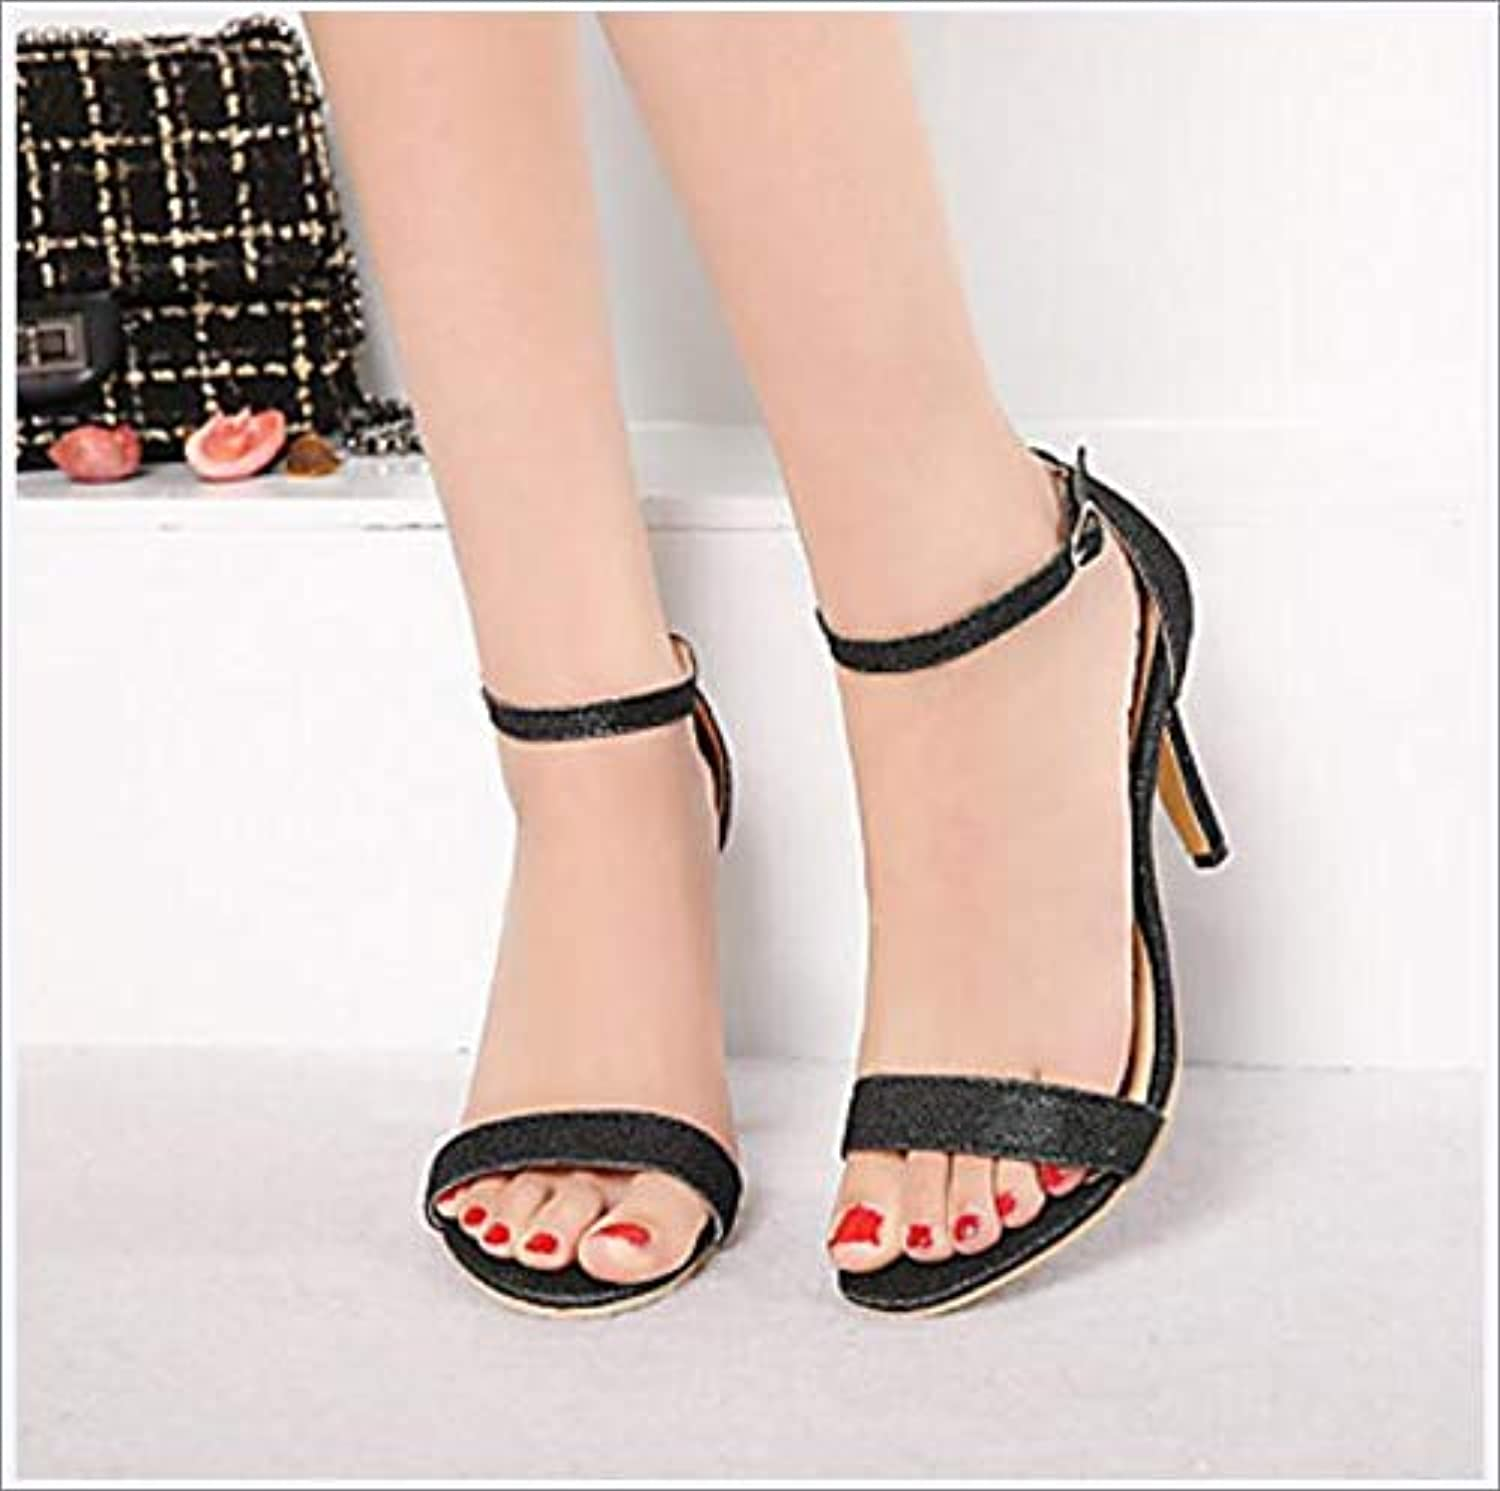 Women's shoes Leatherette Spring Summer Comfort Sandals Stiletto Heel Open Toe Buckle gold Black Silver,B,US8.5 EU39 UK6.5 CN40